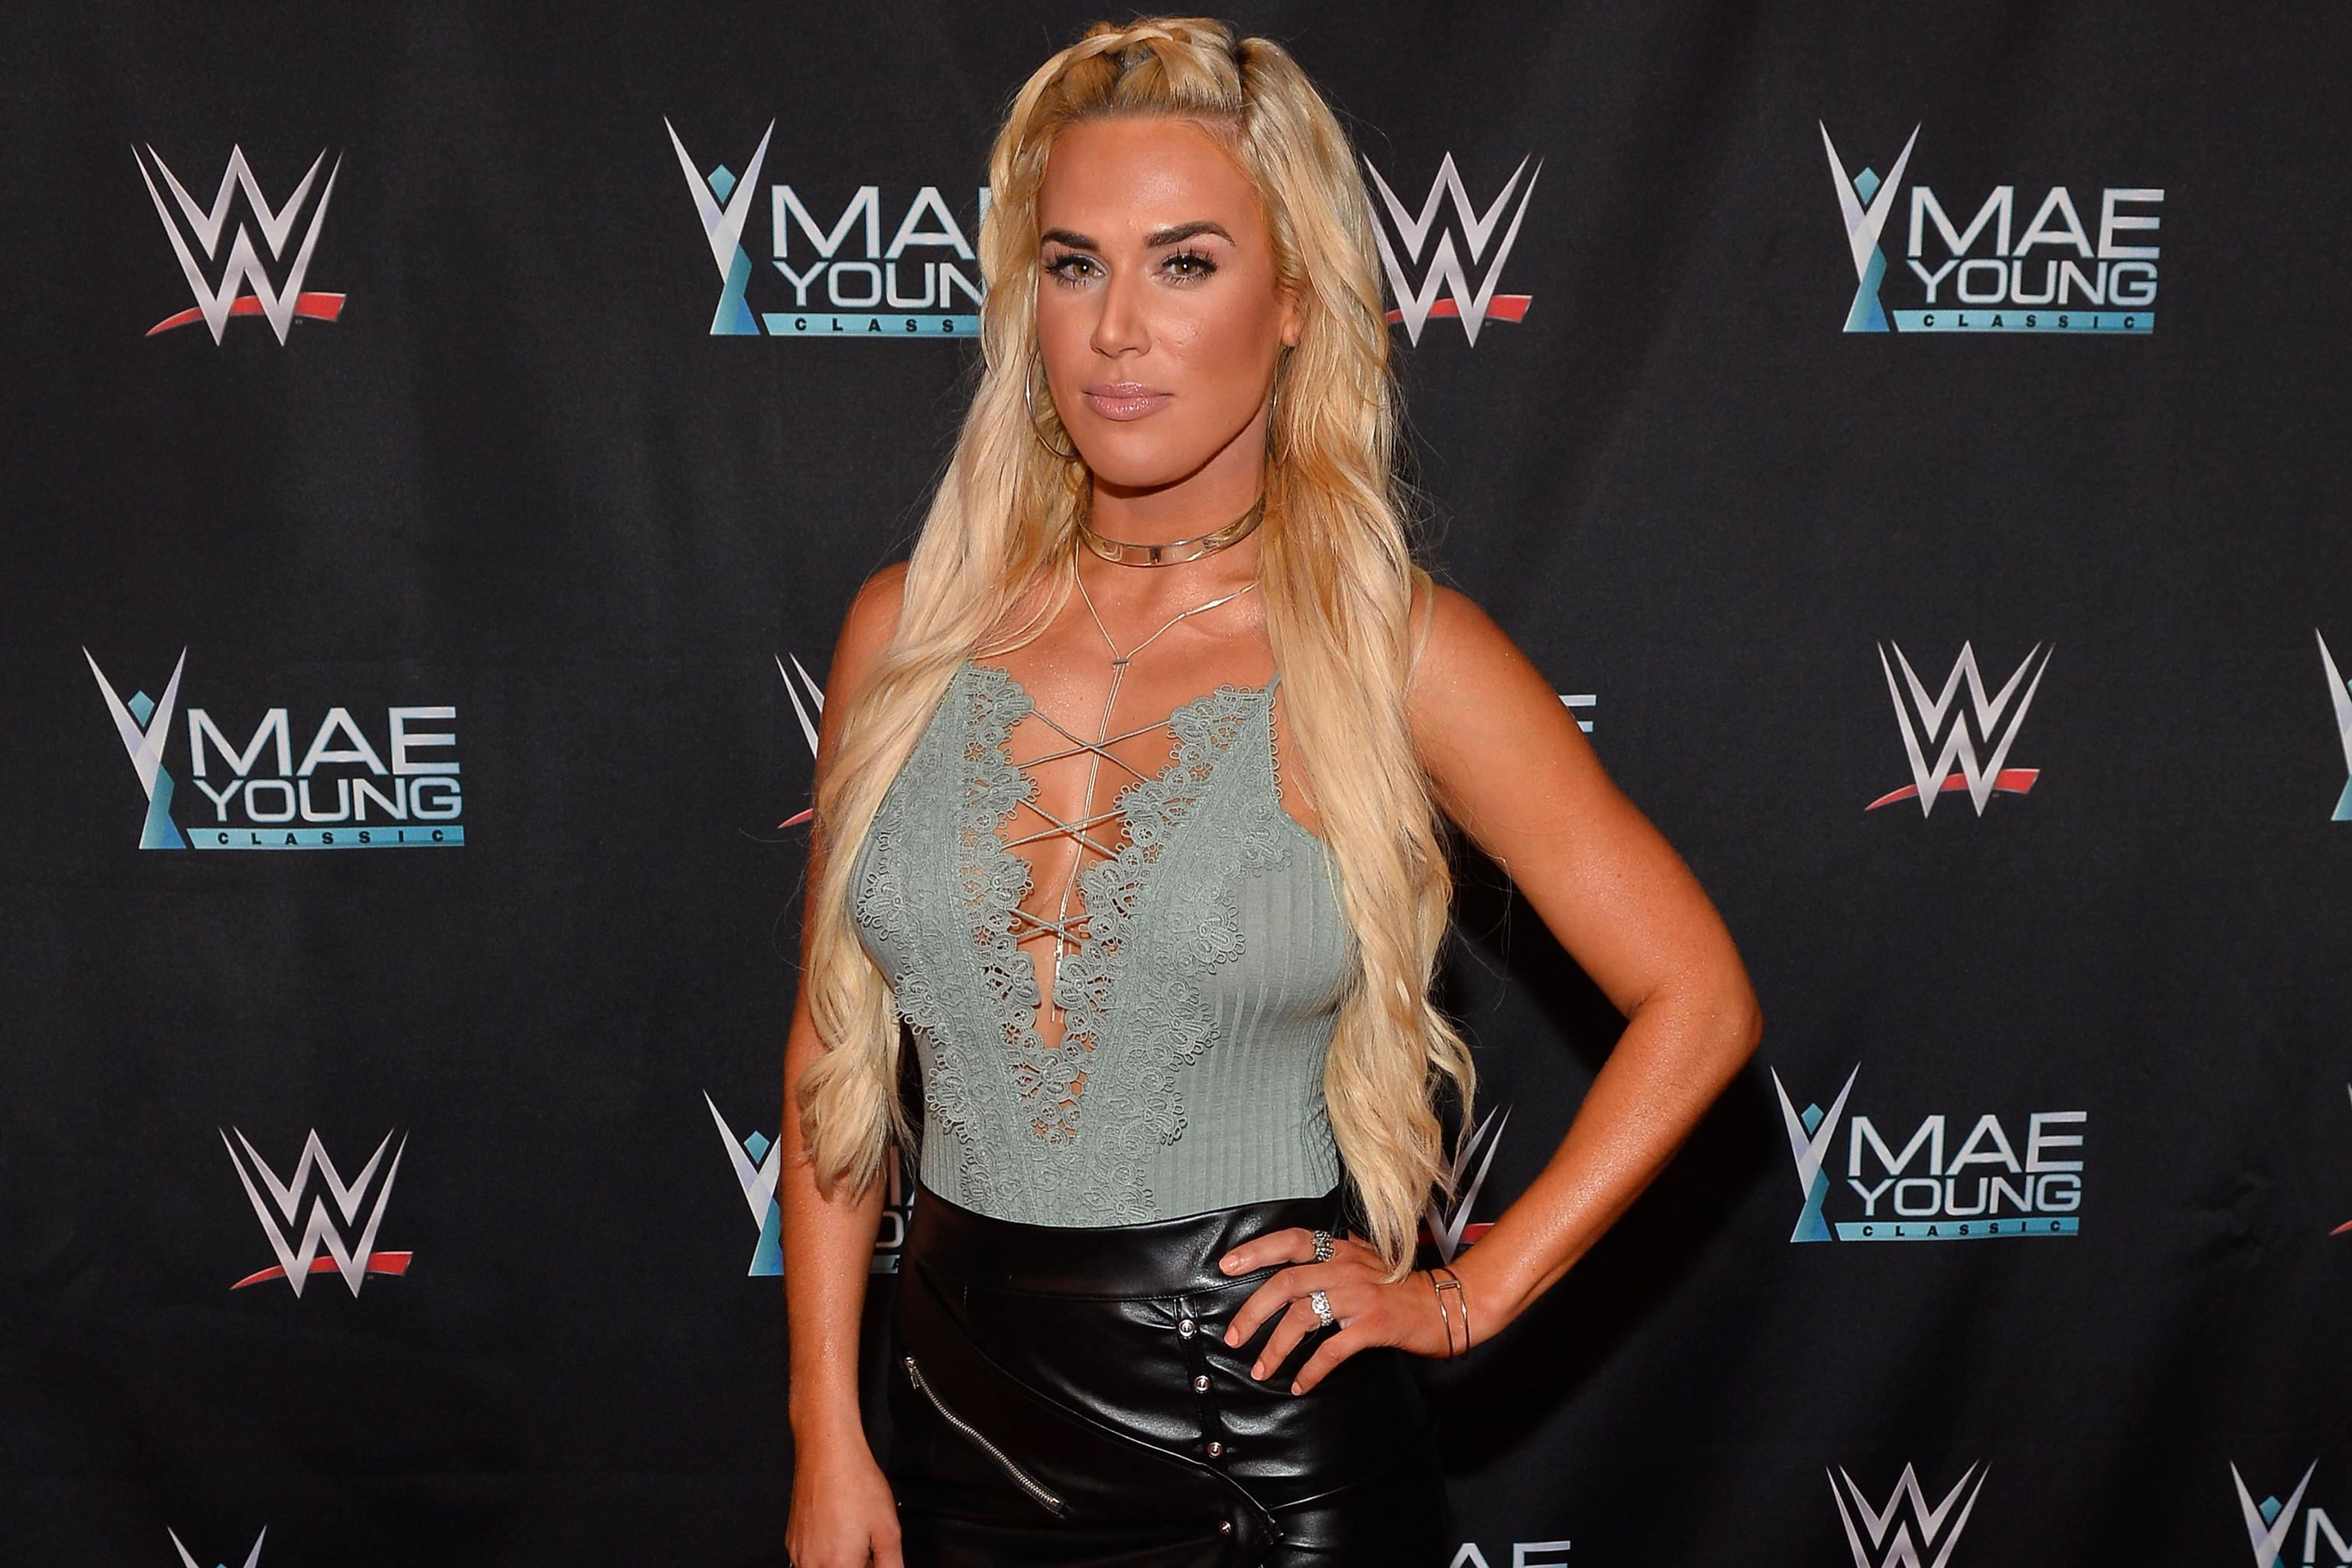 Lana Update Elias Injury Return Edge Leaves E C Podcast In The Wwe Roundup Bleacher Report Latest News Videos And Highlights